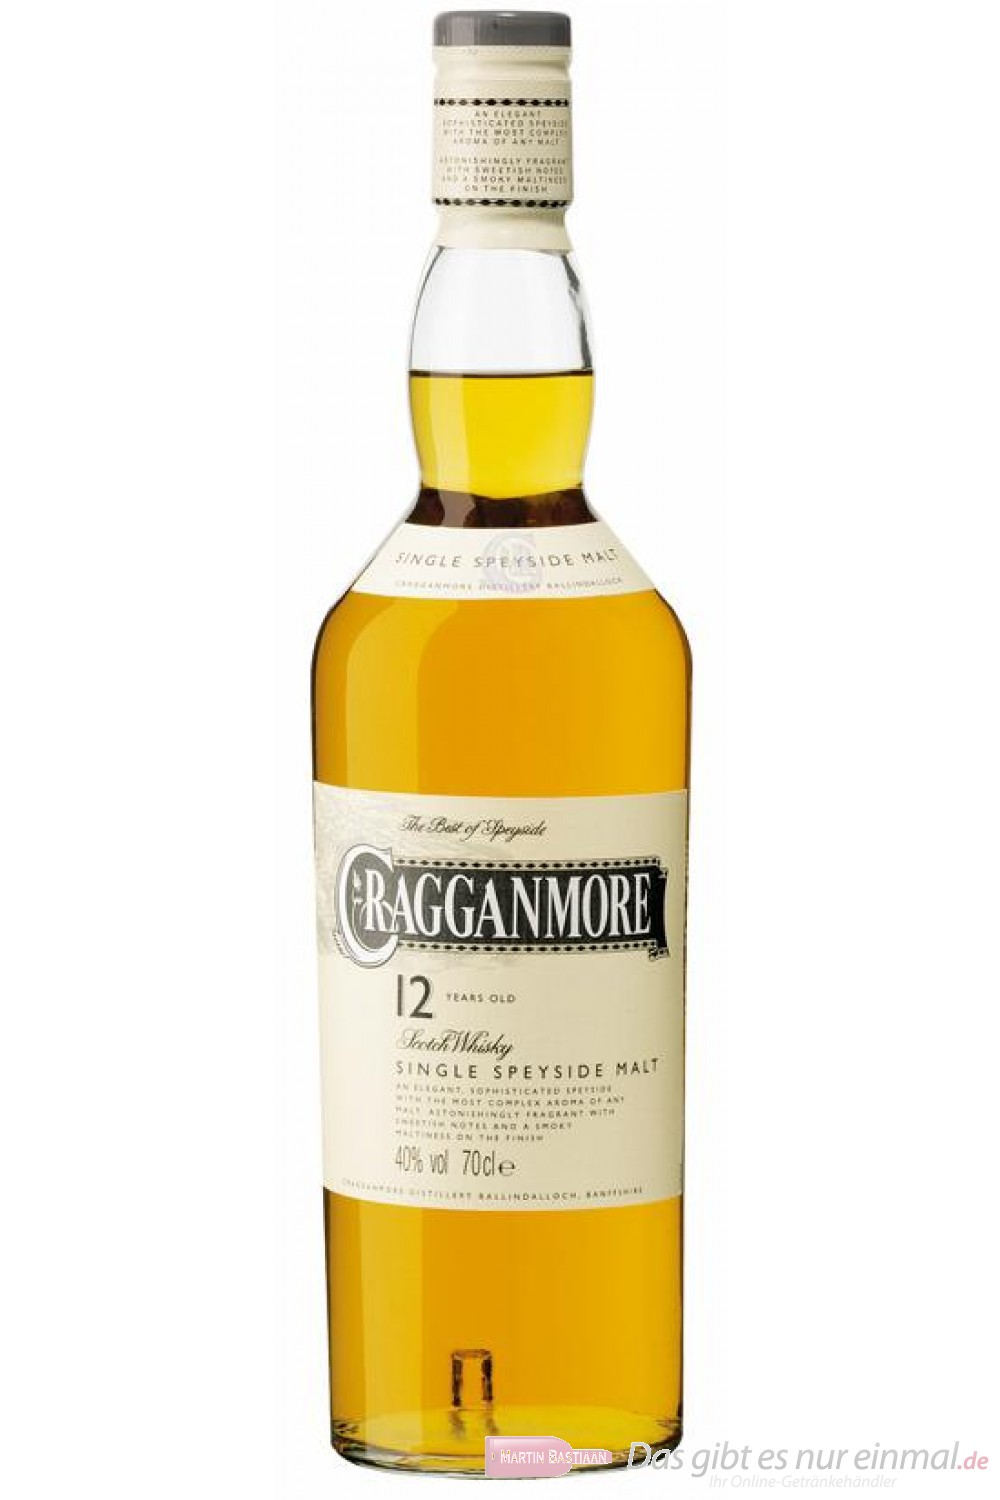 Cragganmore 12 years Speyside Scotch Pure Malt Whisky 40% 0,7l